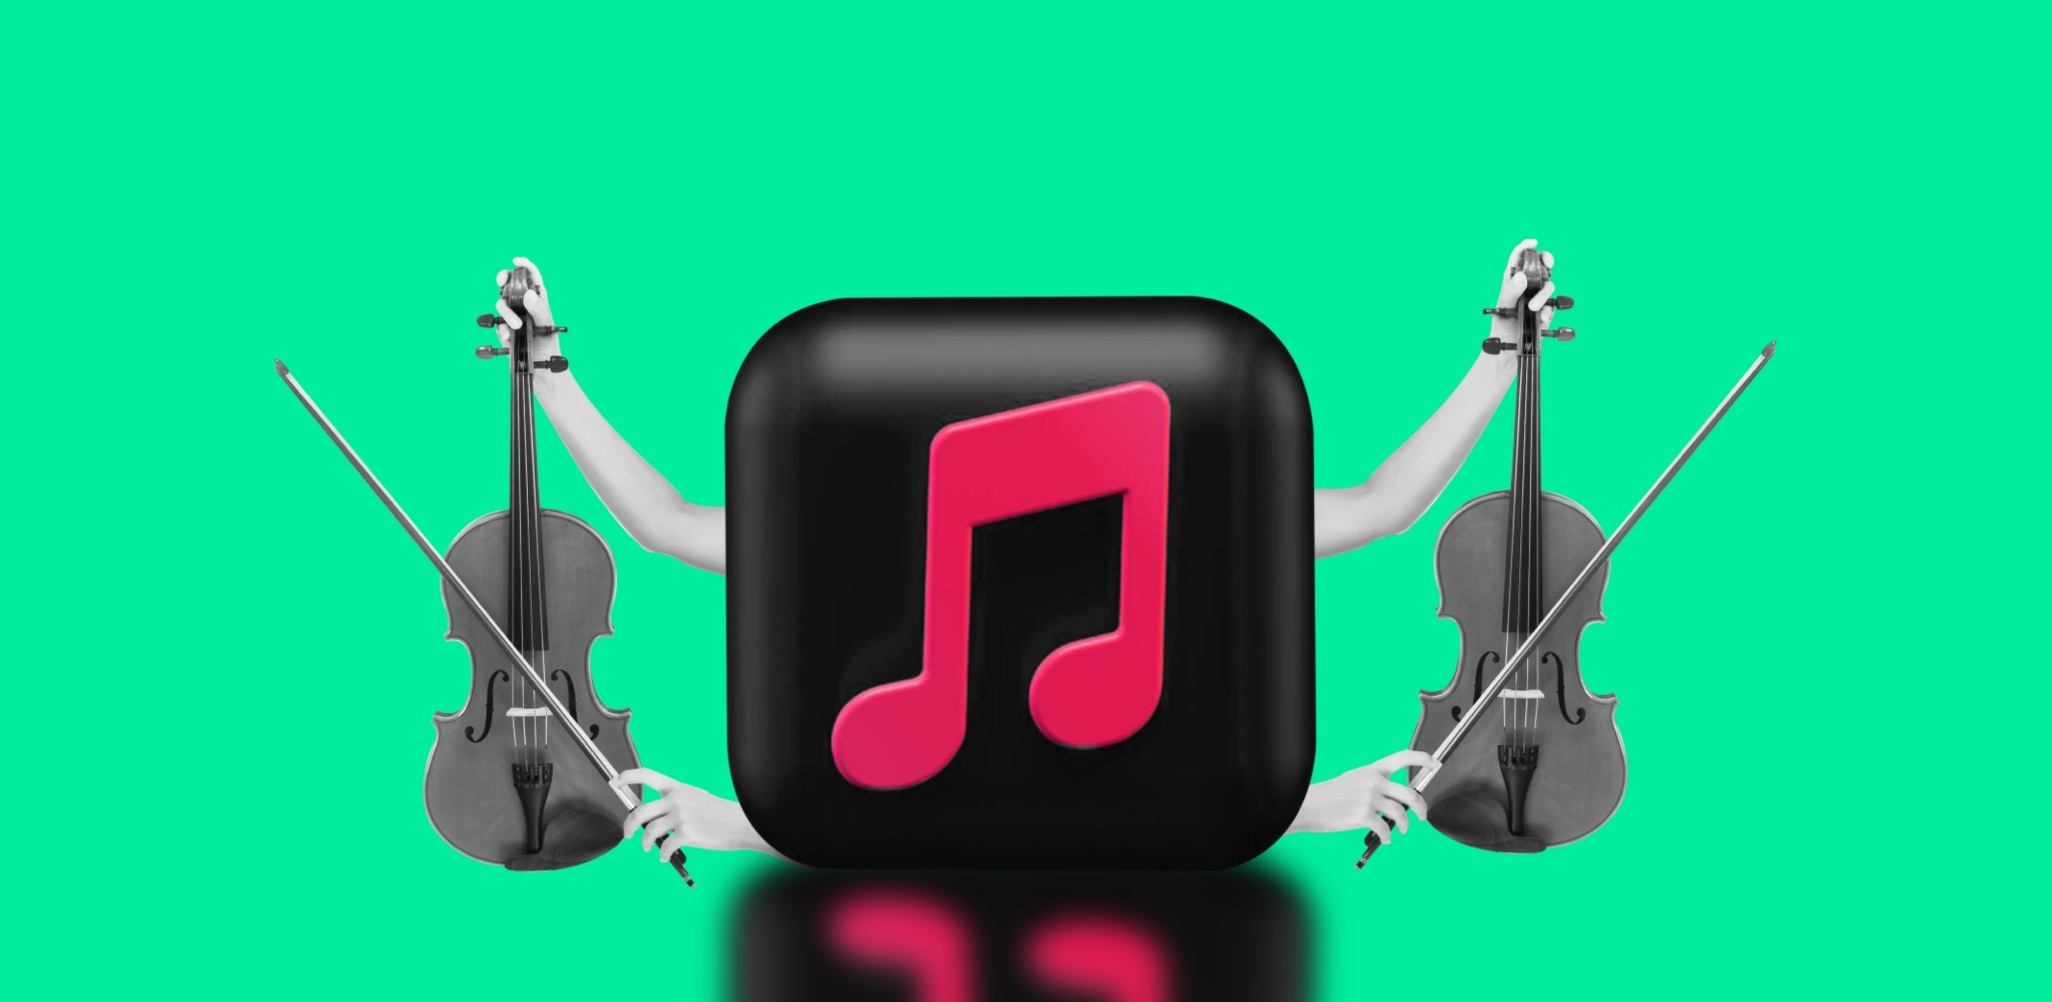 Apple gives Spotify's classical music playlists a run for their money